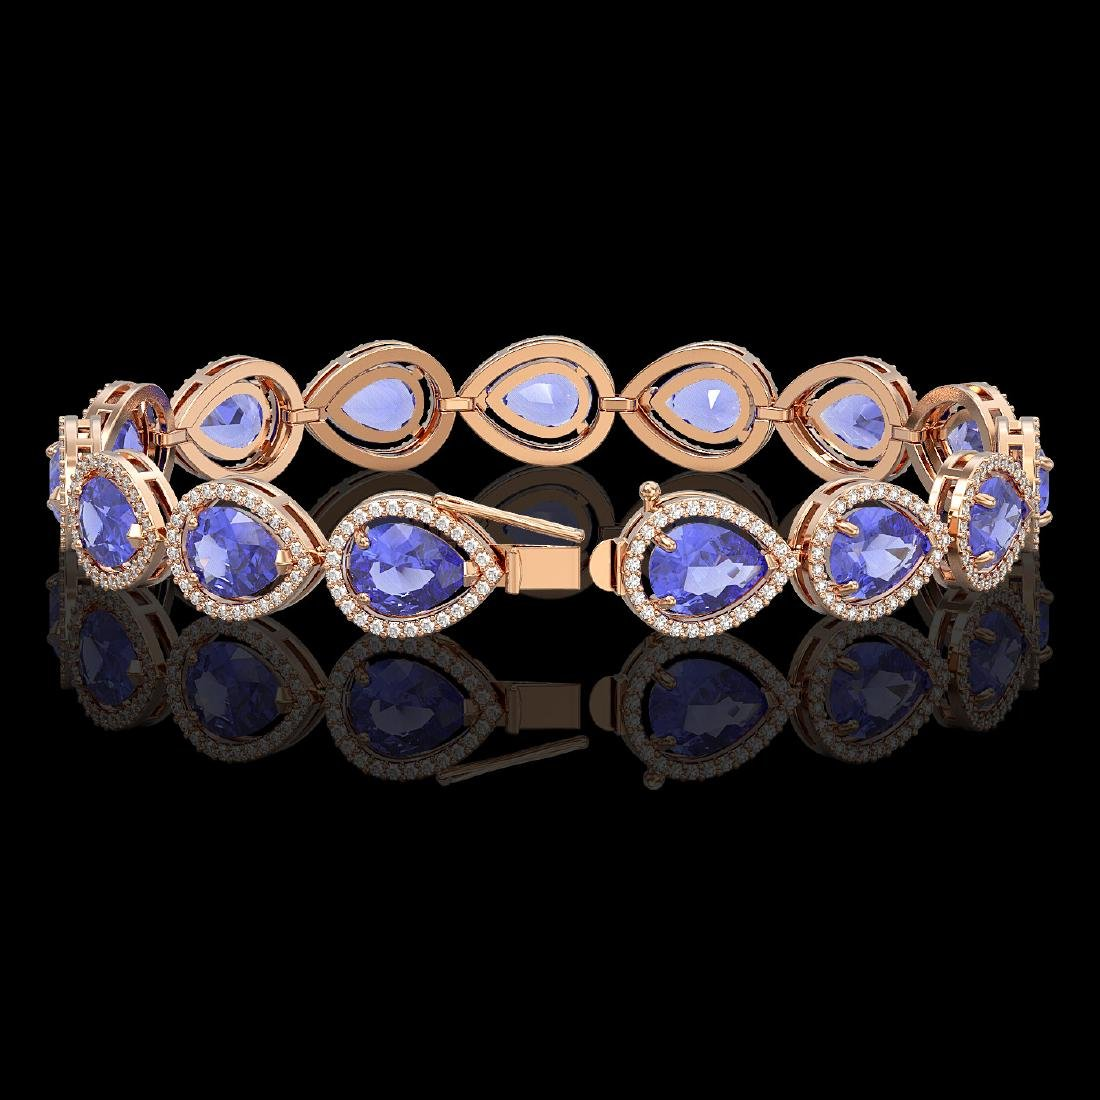 21.06 CTW Tanzanite & Diamond Halo Bracelet 10K Rose - 2